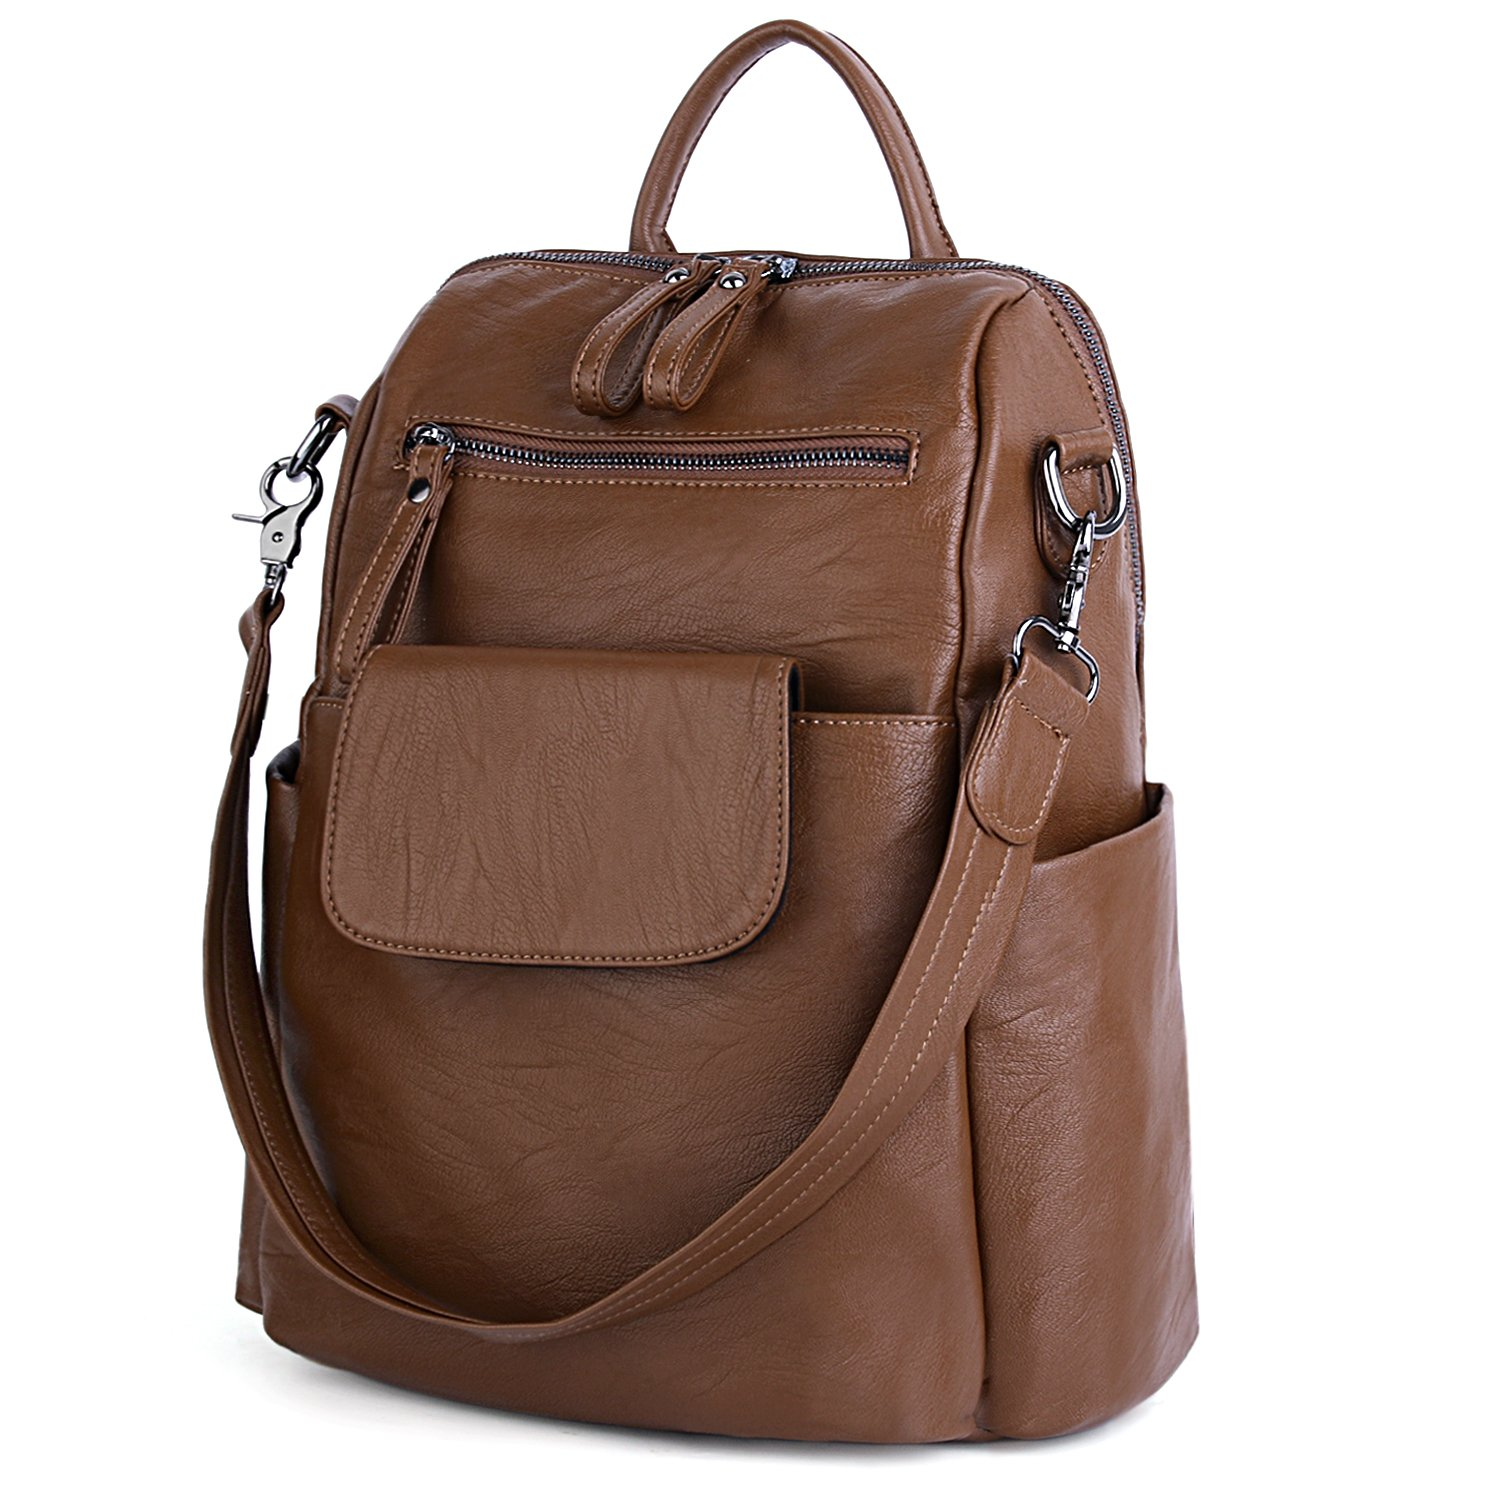 UTO Women Backpack Purse 3 ways PU Washed Leather Ladies Rucksack Shoulder Bag B Brown by UTO